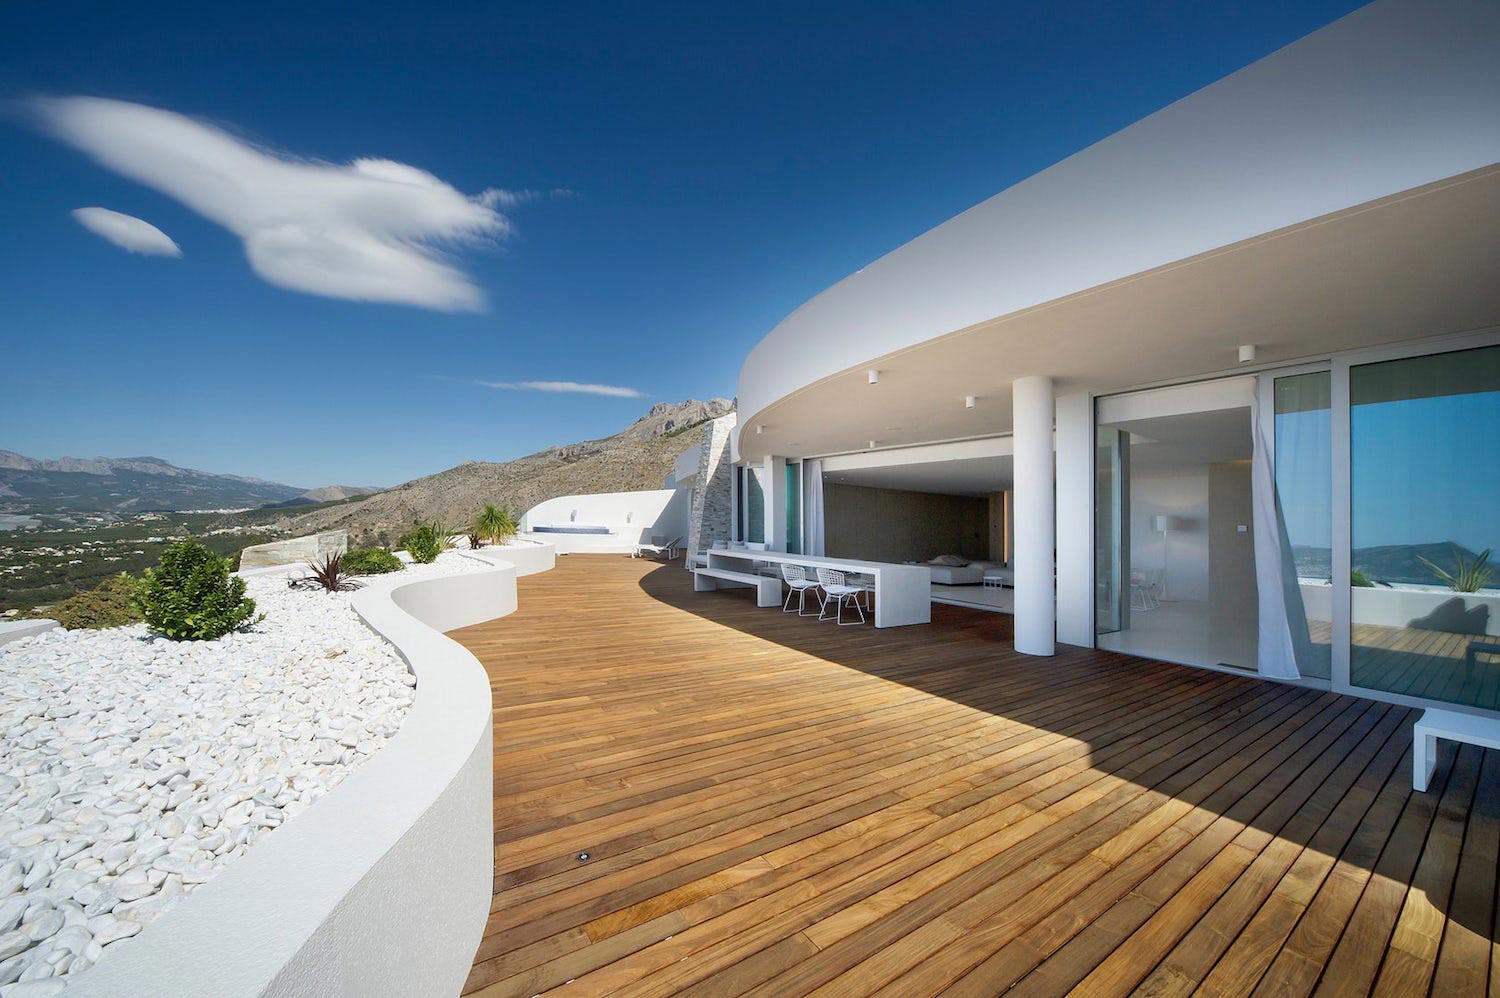 Rooftop Apartment On Top Of A Hill Looking At The Mediterranean And Respecting The Traditional Architecture Of The Area Caandesign Architecture And Home Design Blog